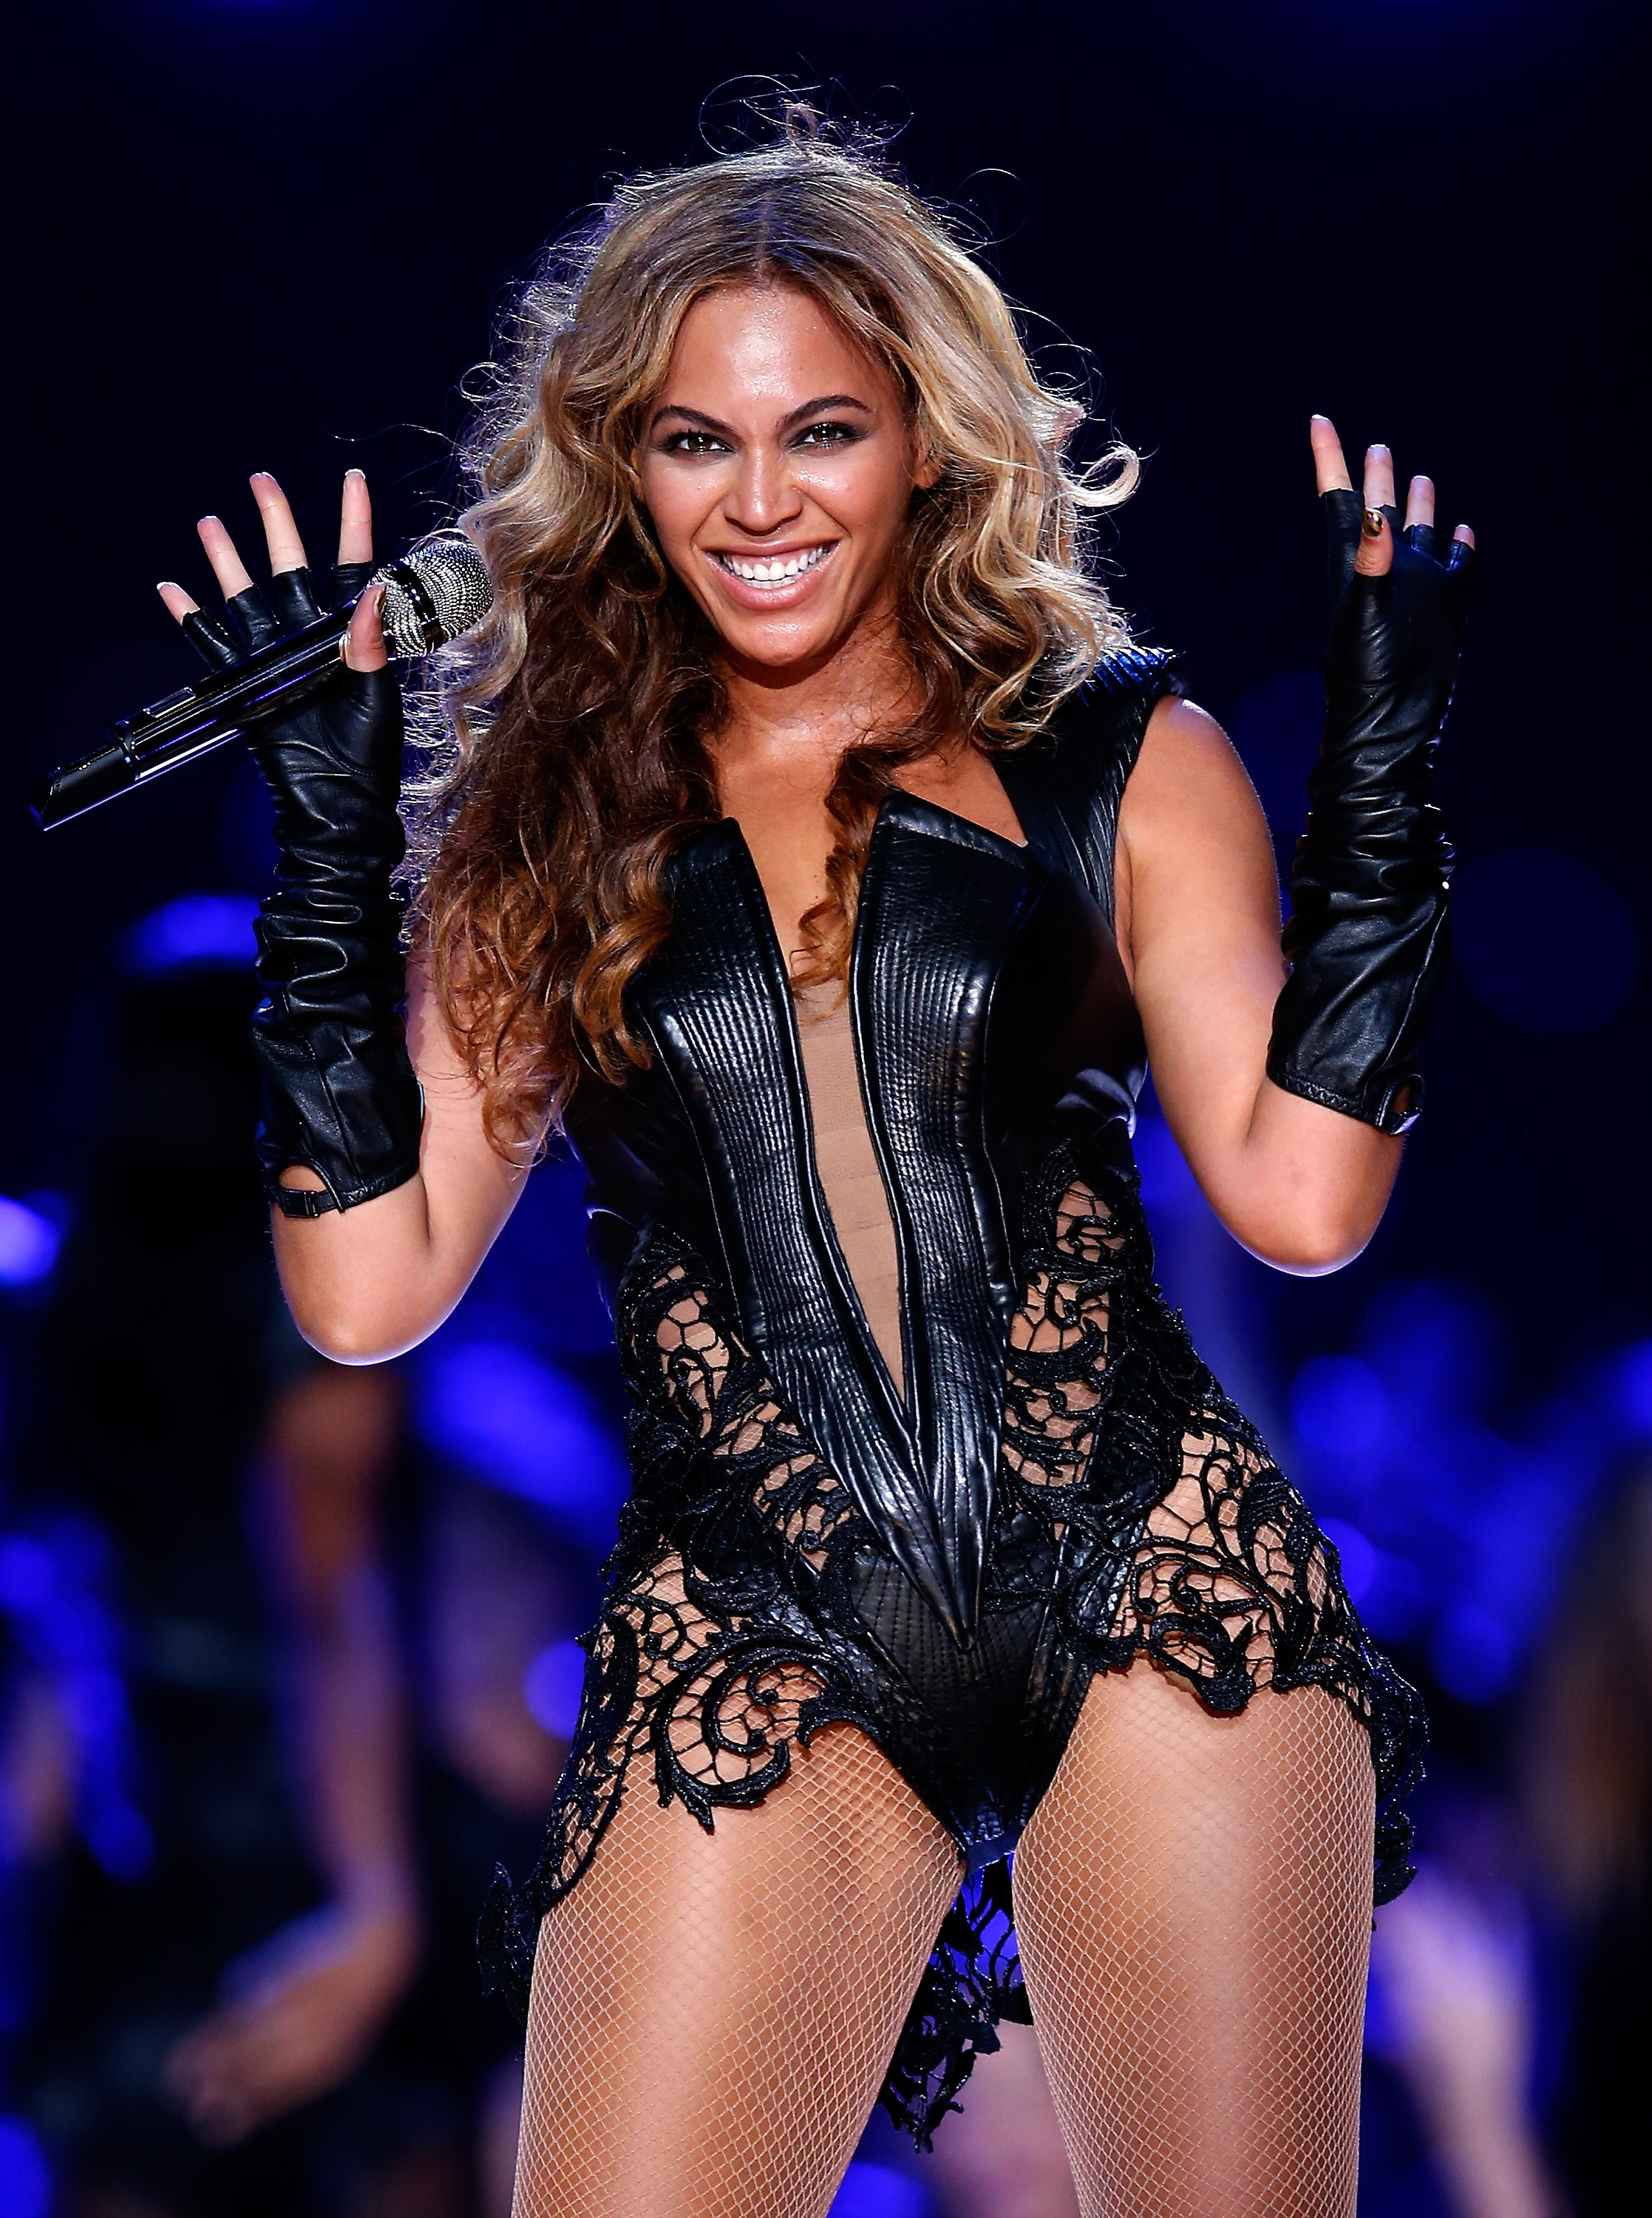 Beyonce-performs-during-the-Pepsi-Super-Bowl-XLVII-Halftime-Show-at-the-Mercedes-Benz-Superdome-on-February-3-2013-in-New-Orleans-Louisiana